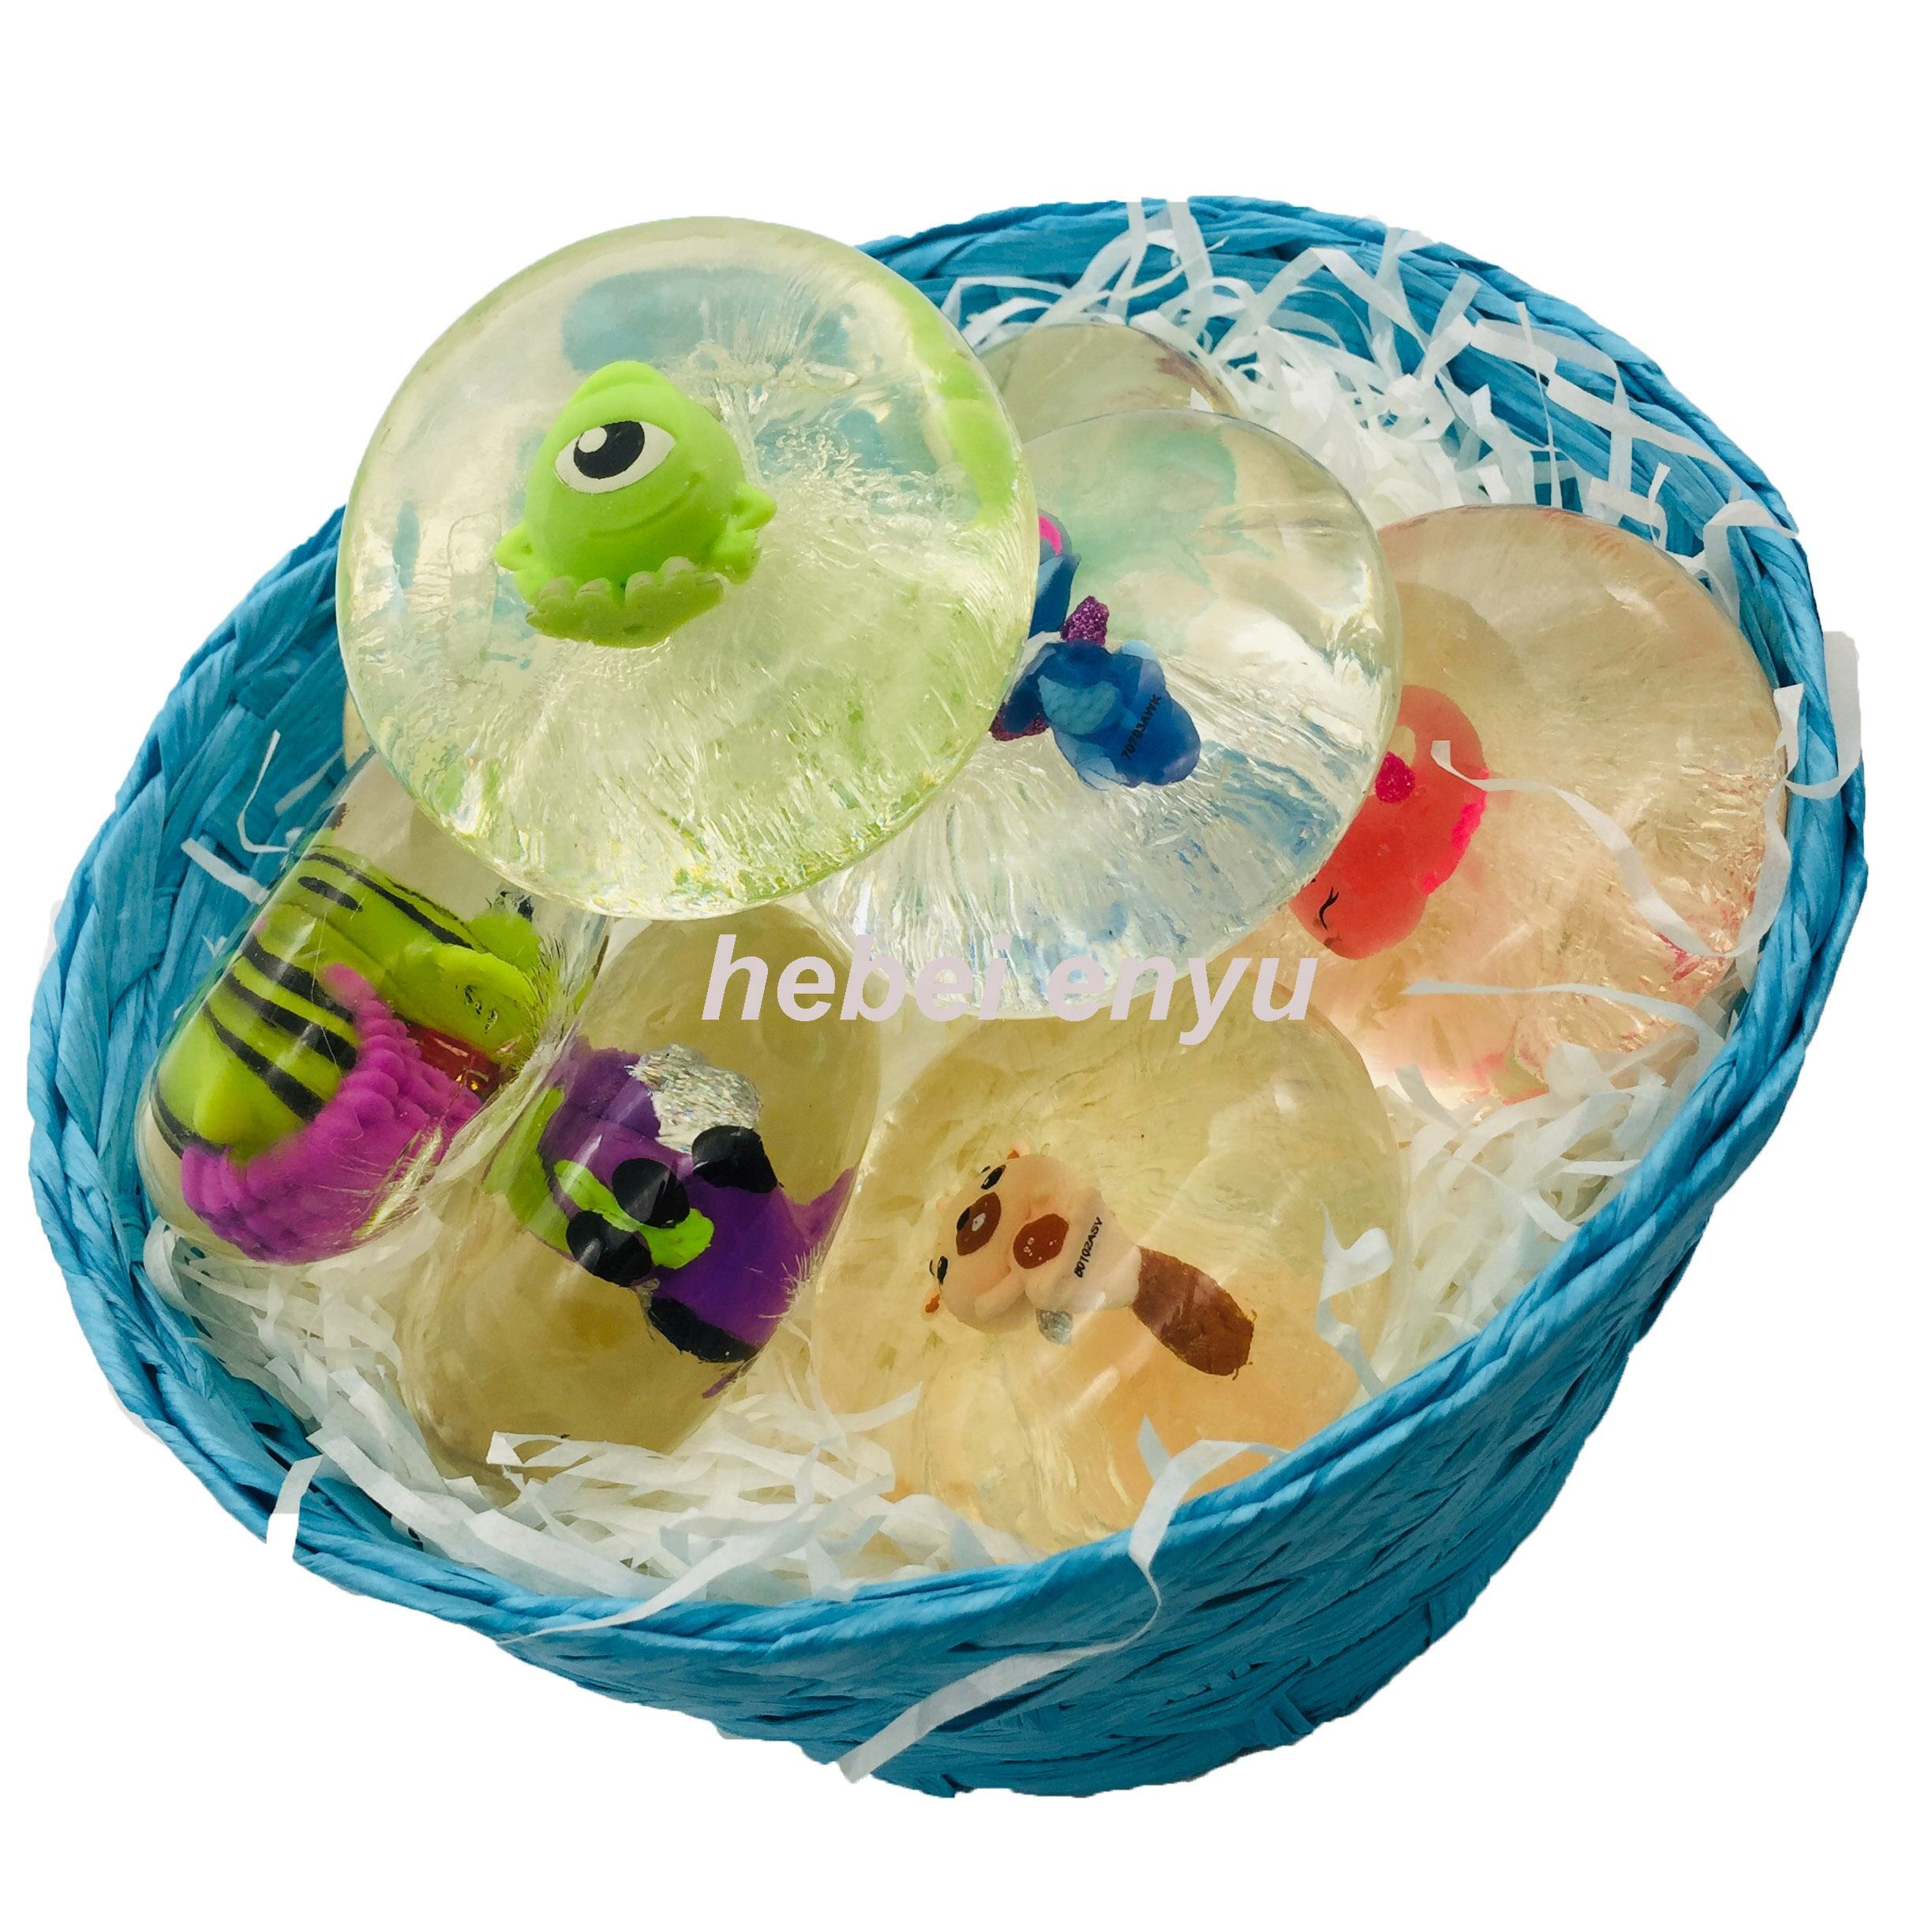 Glycerin soap with toys in it